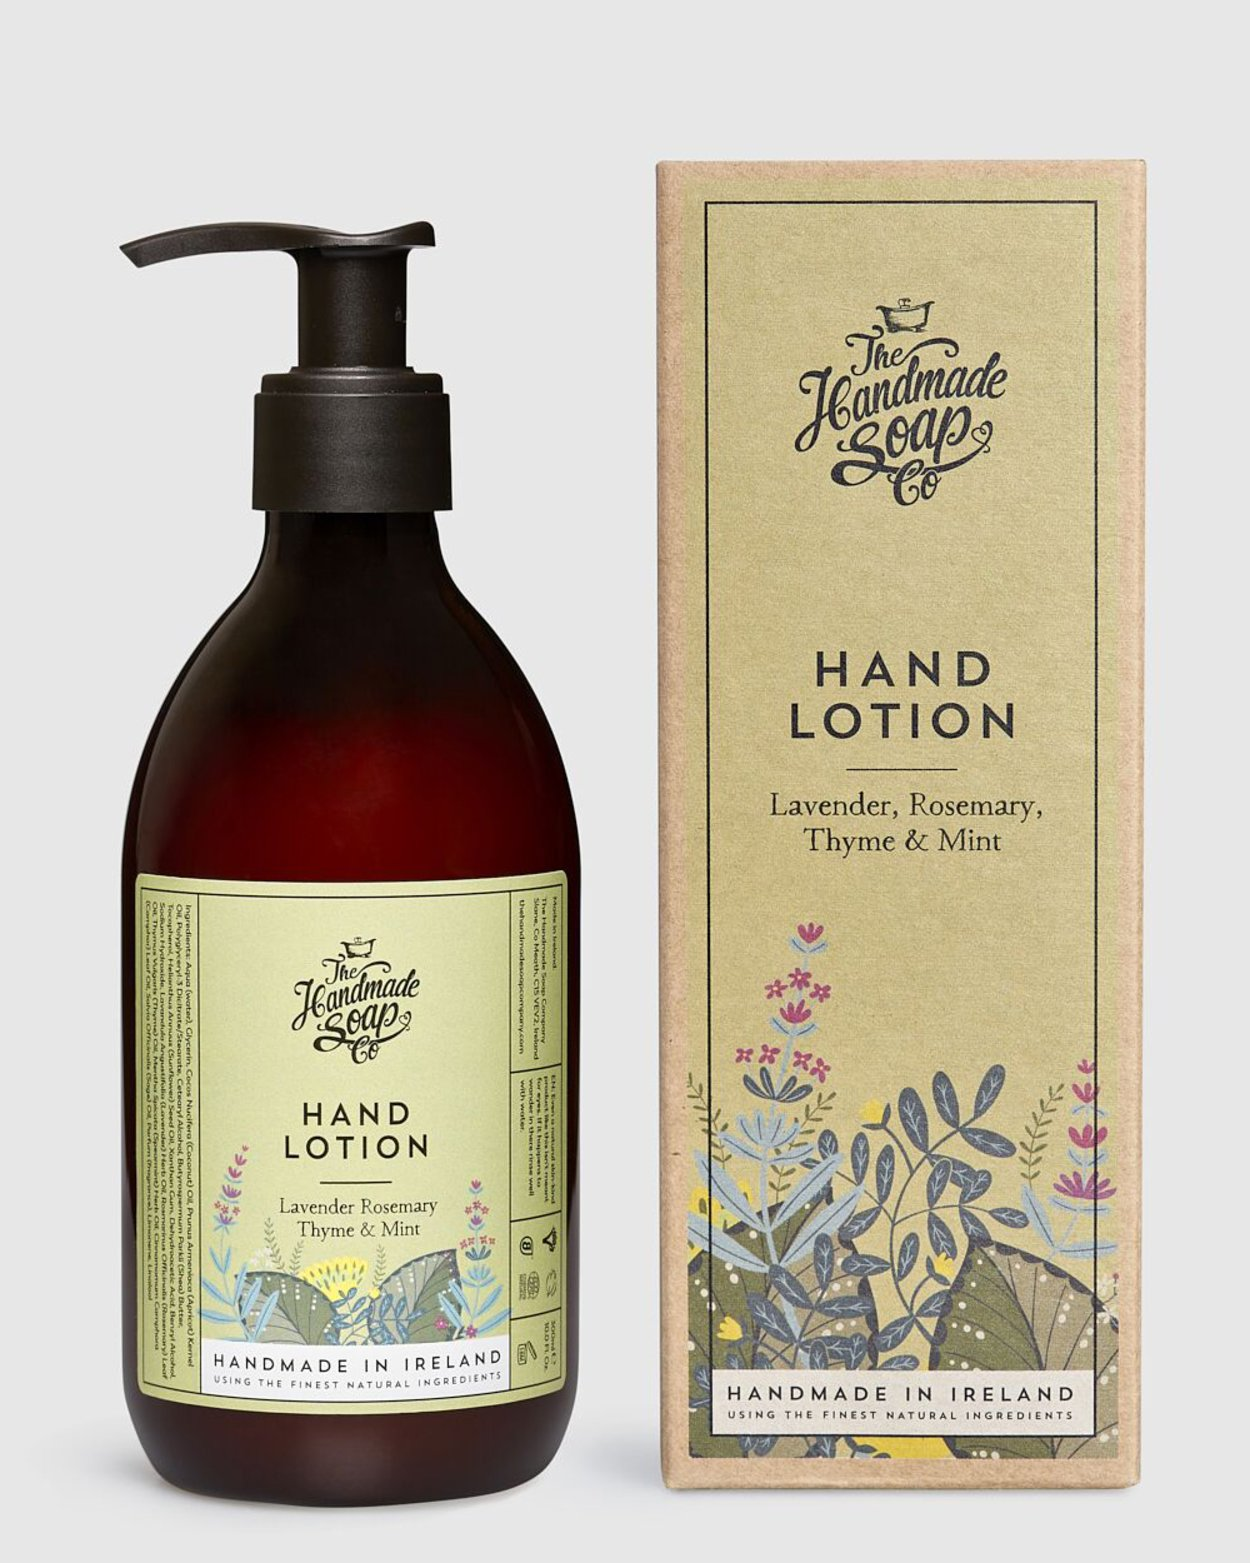 Lavender Rosemary Thyme & Mint Hand Lotion